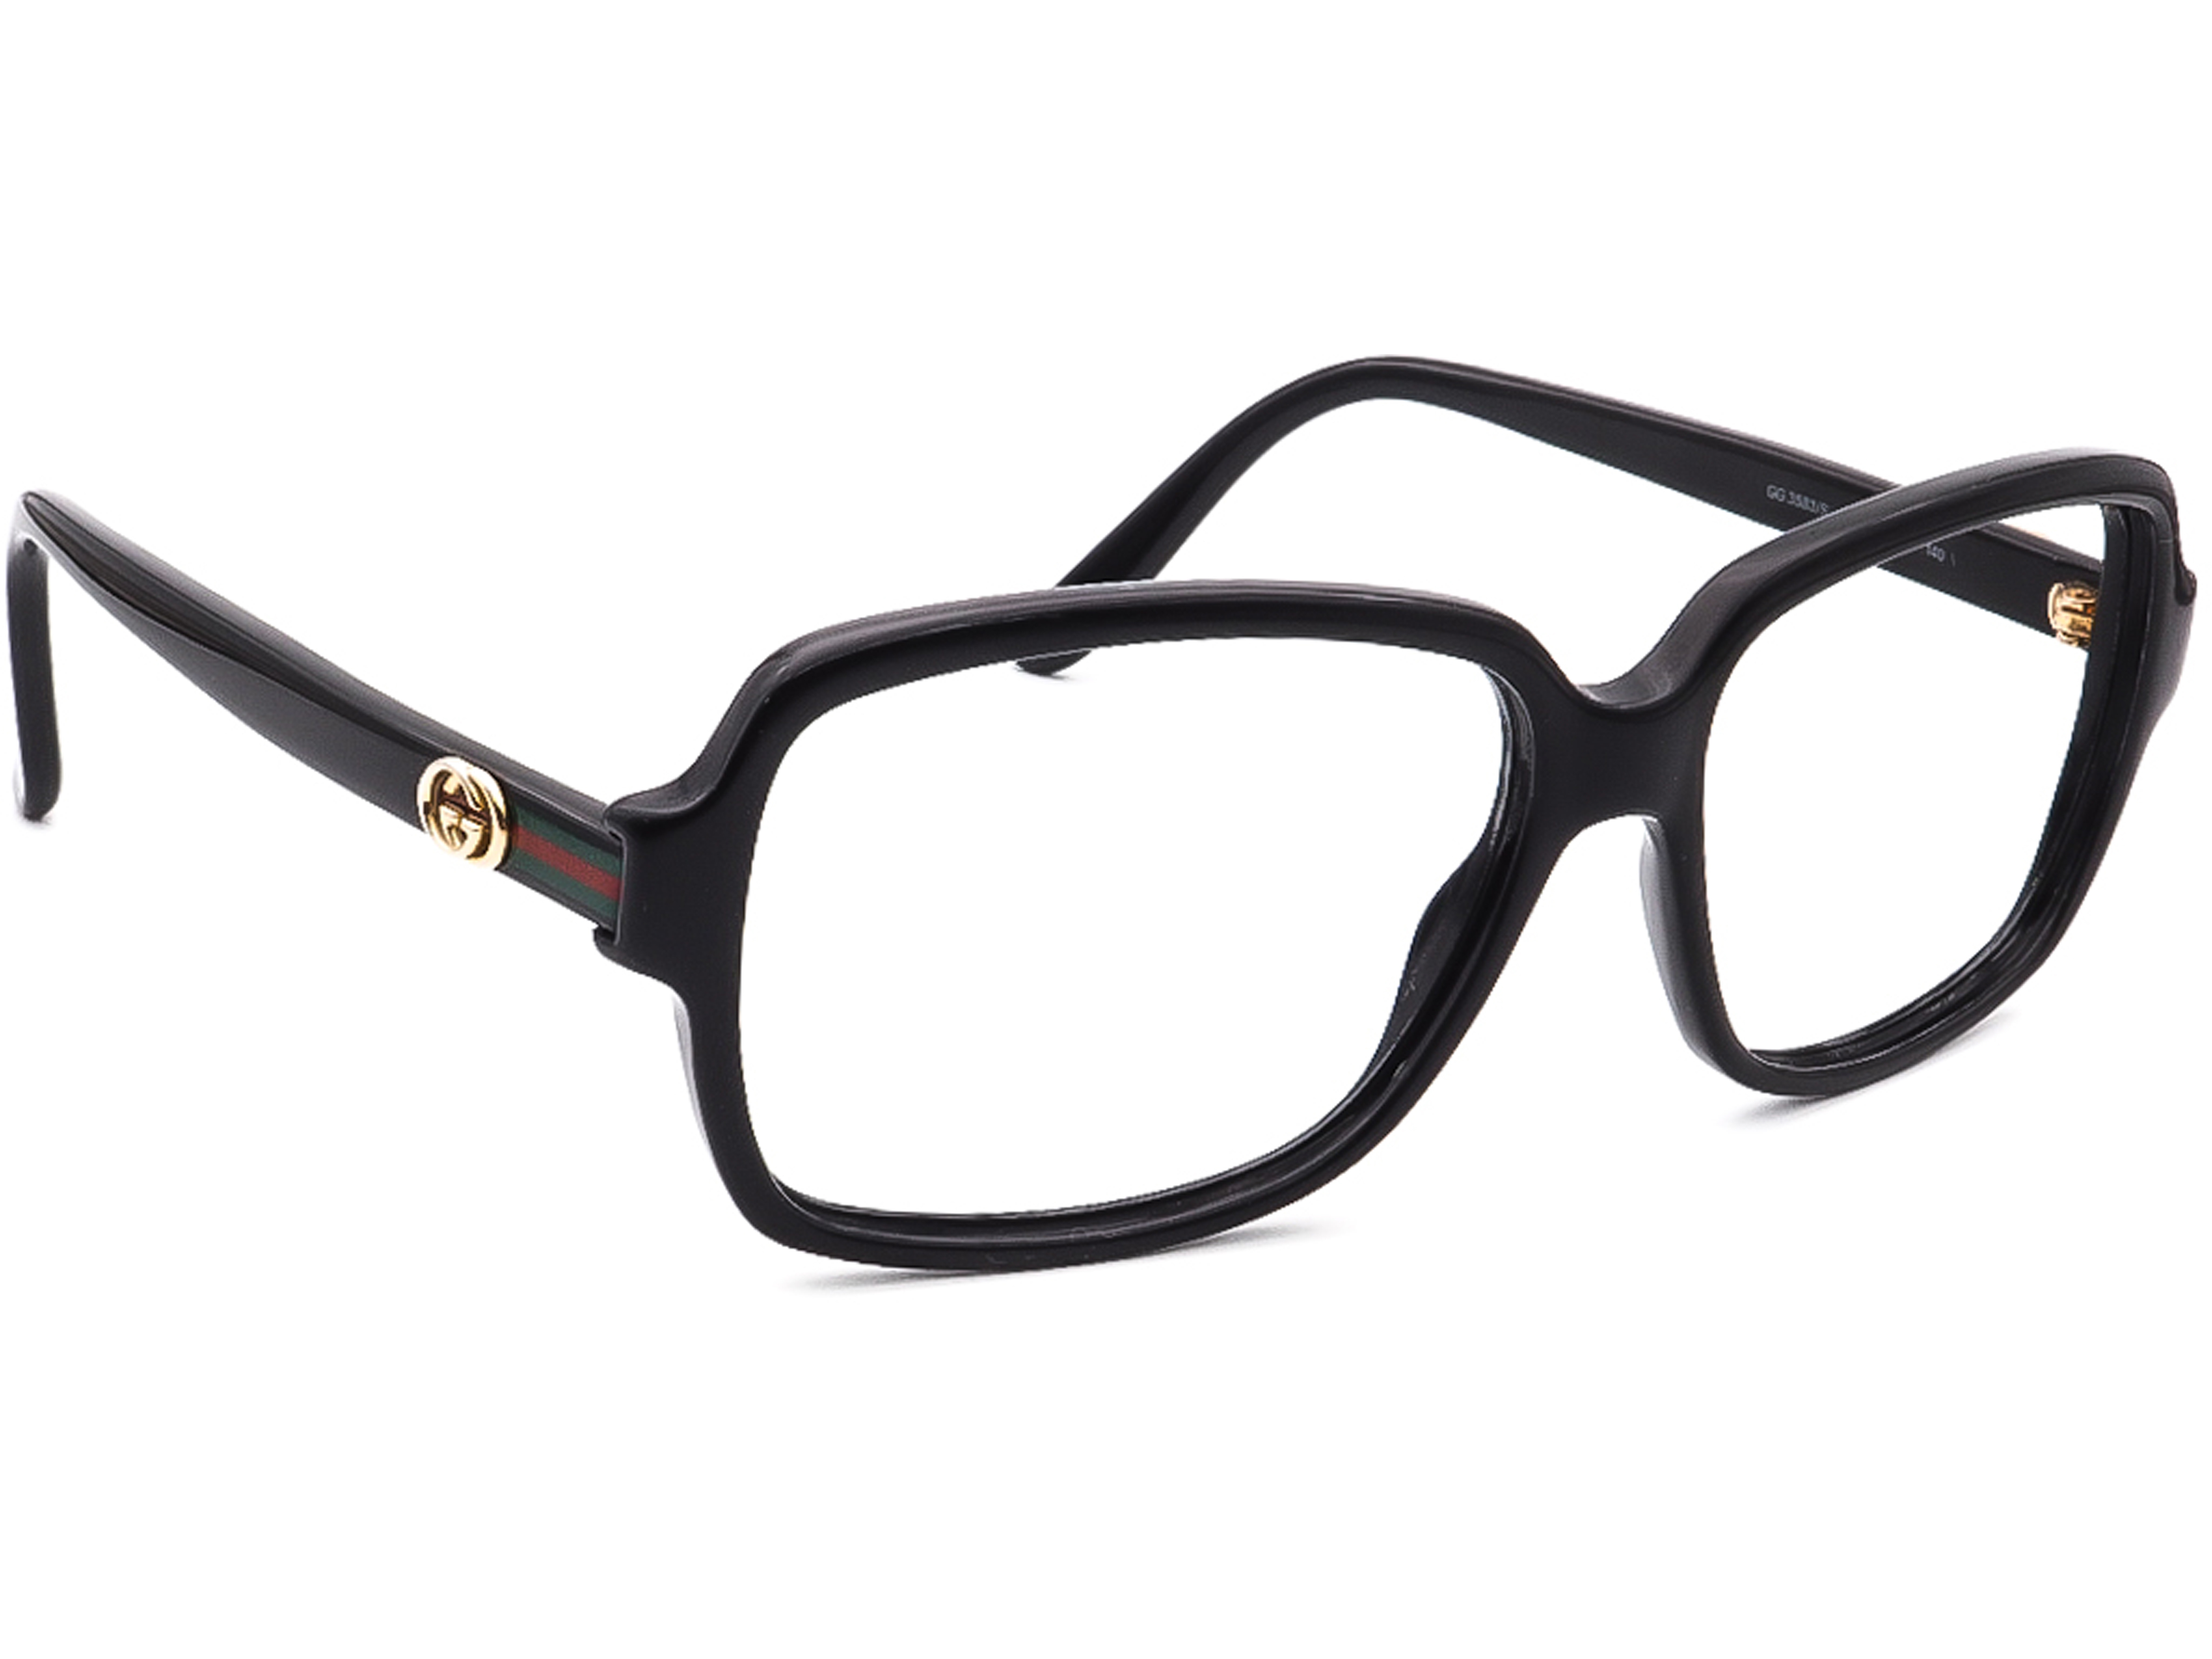 Gucci GG 3583/S 807JJ Sunglasses Frame Only